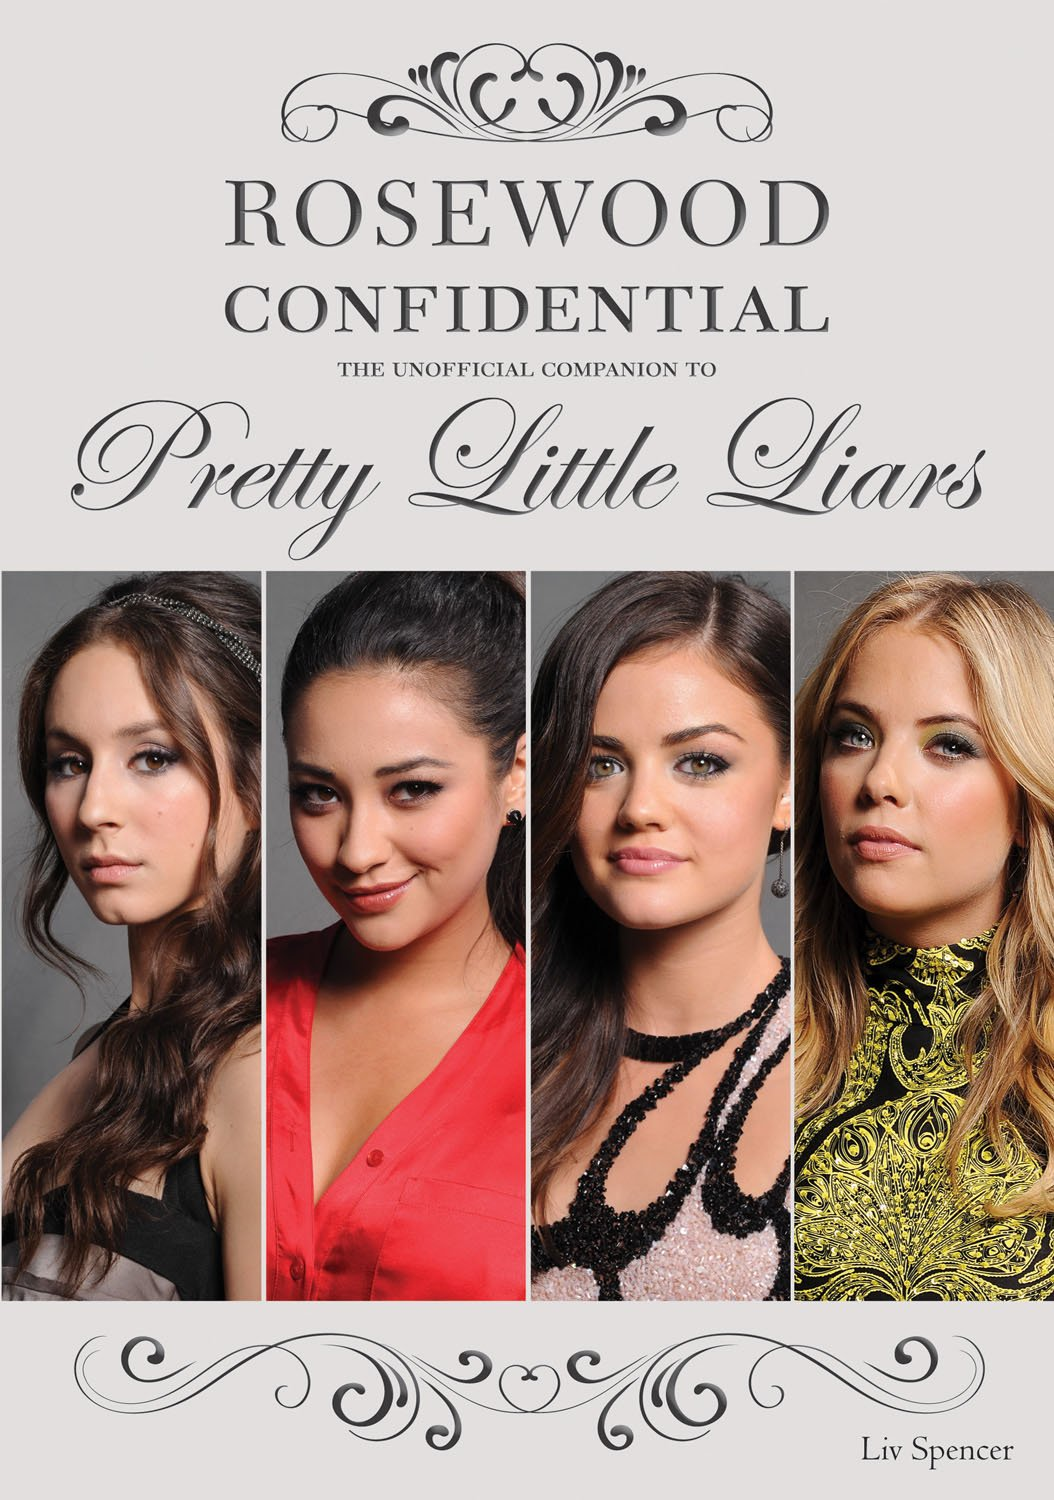 Rosewood Confidential: The Unofficial Companion to Pretty